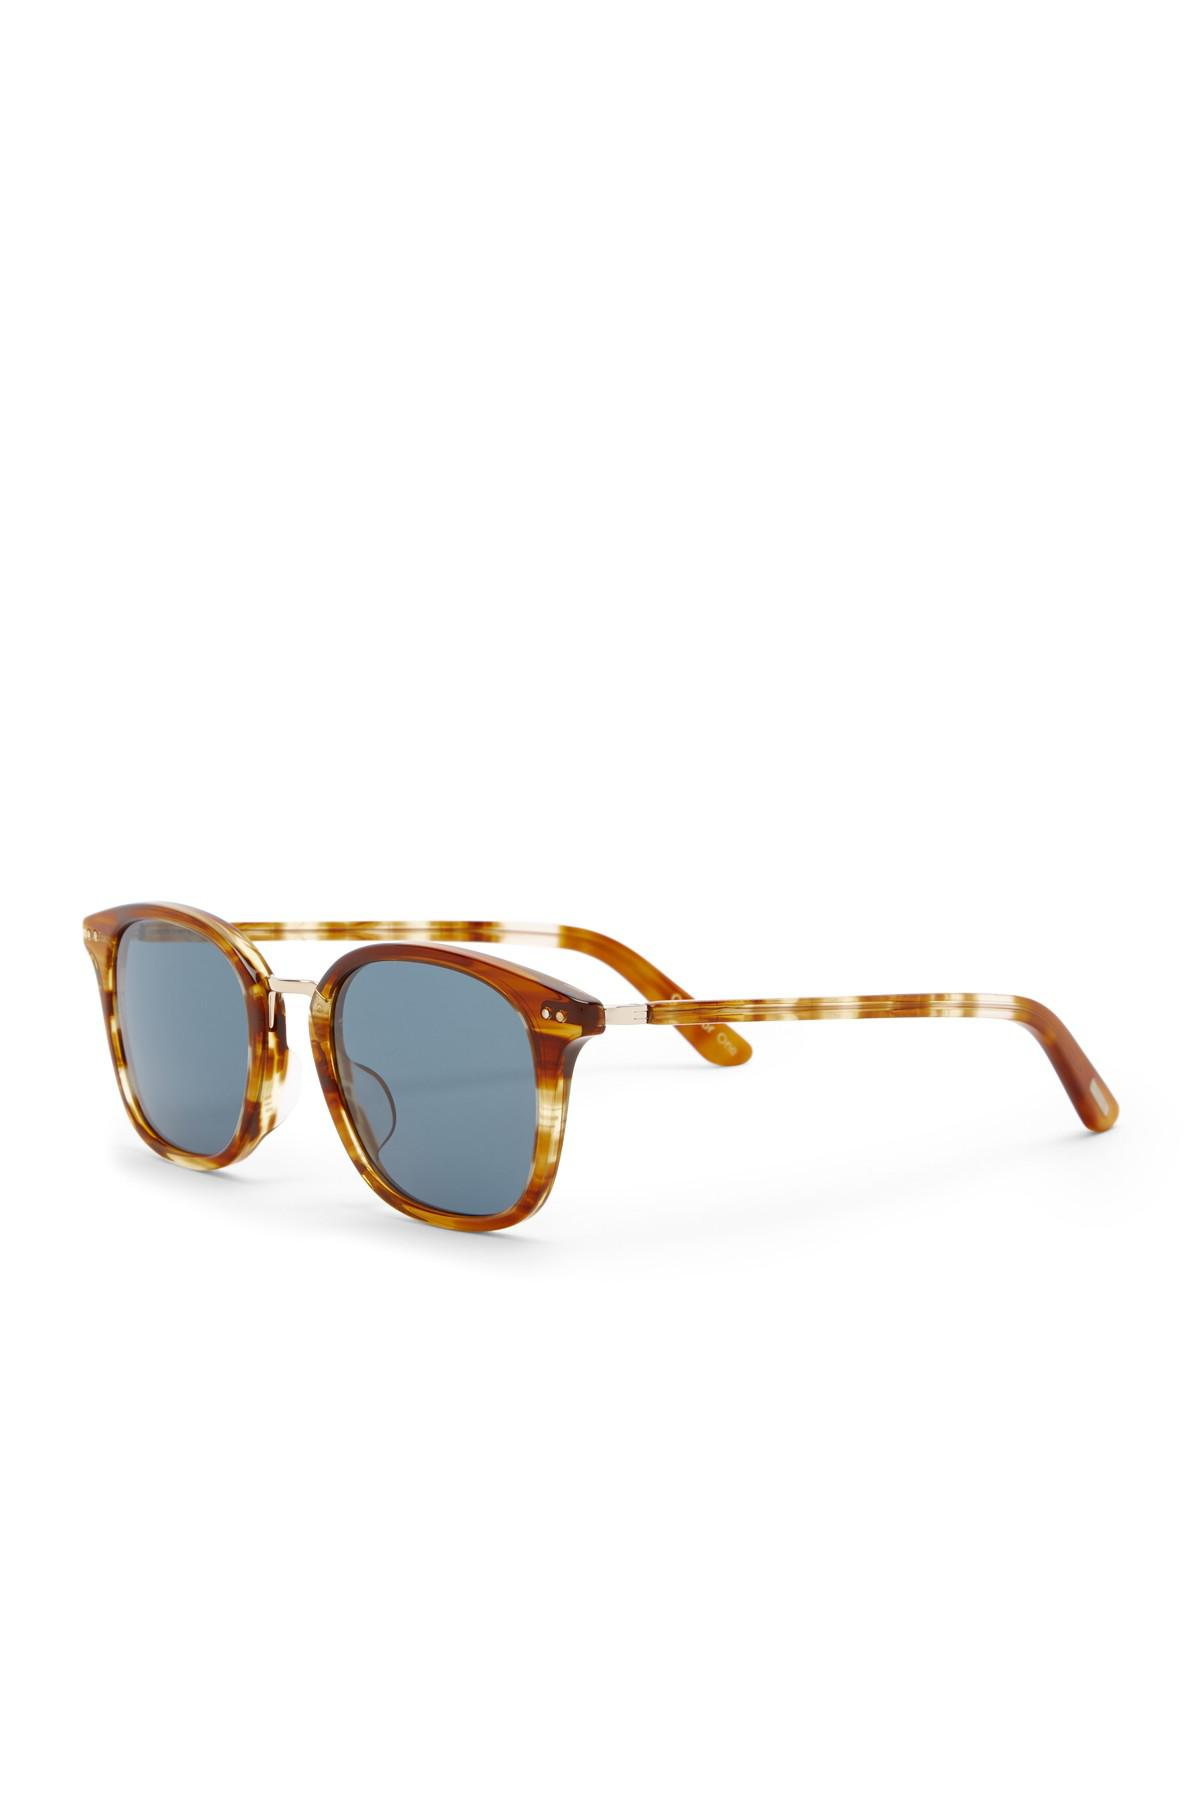 87d53c194a Lyst - Toms 50mm Barron Amber Ale Sunglasses in Blue